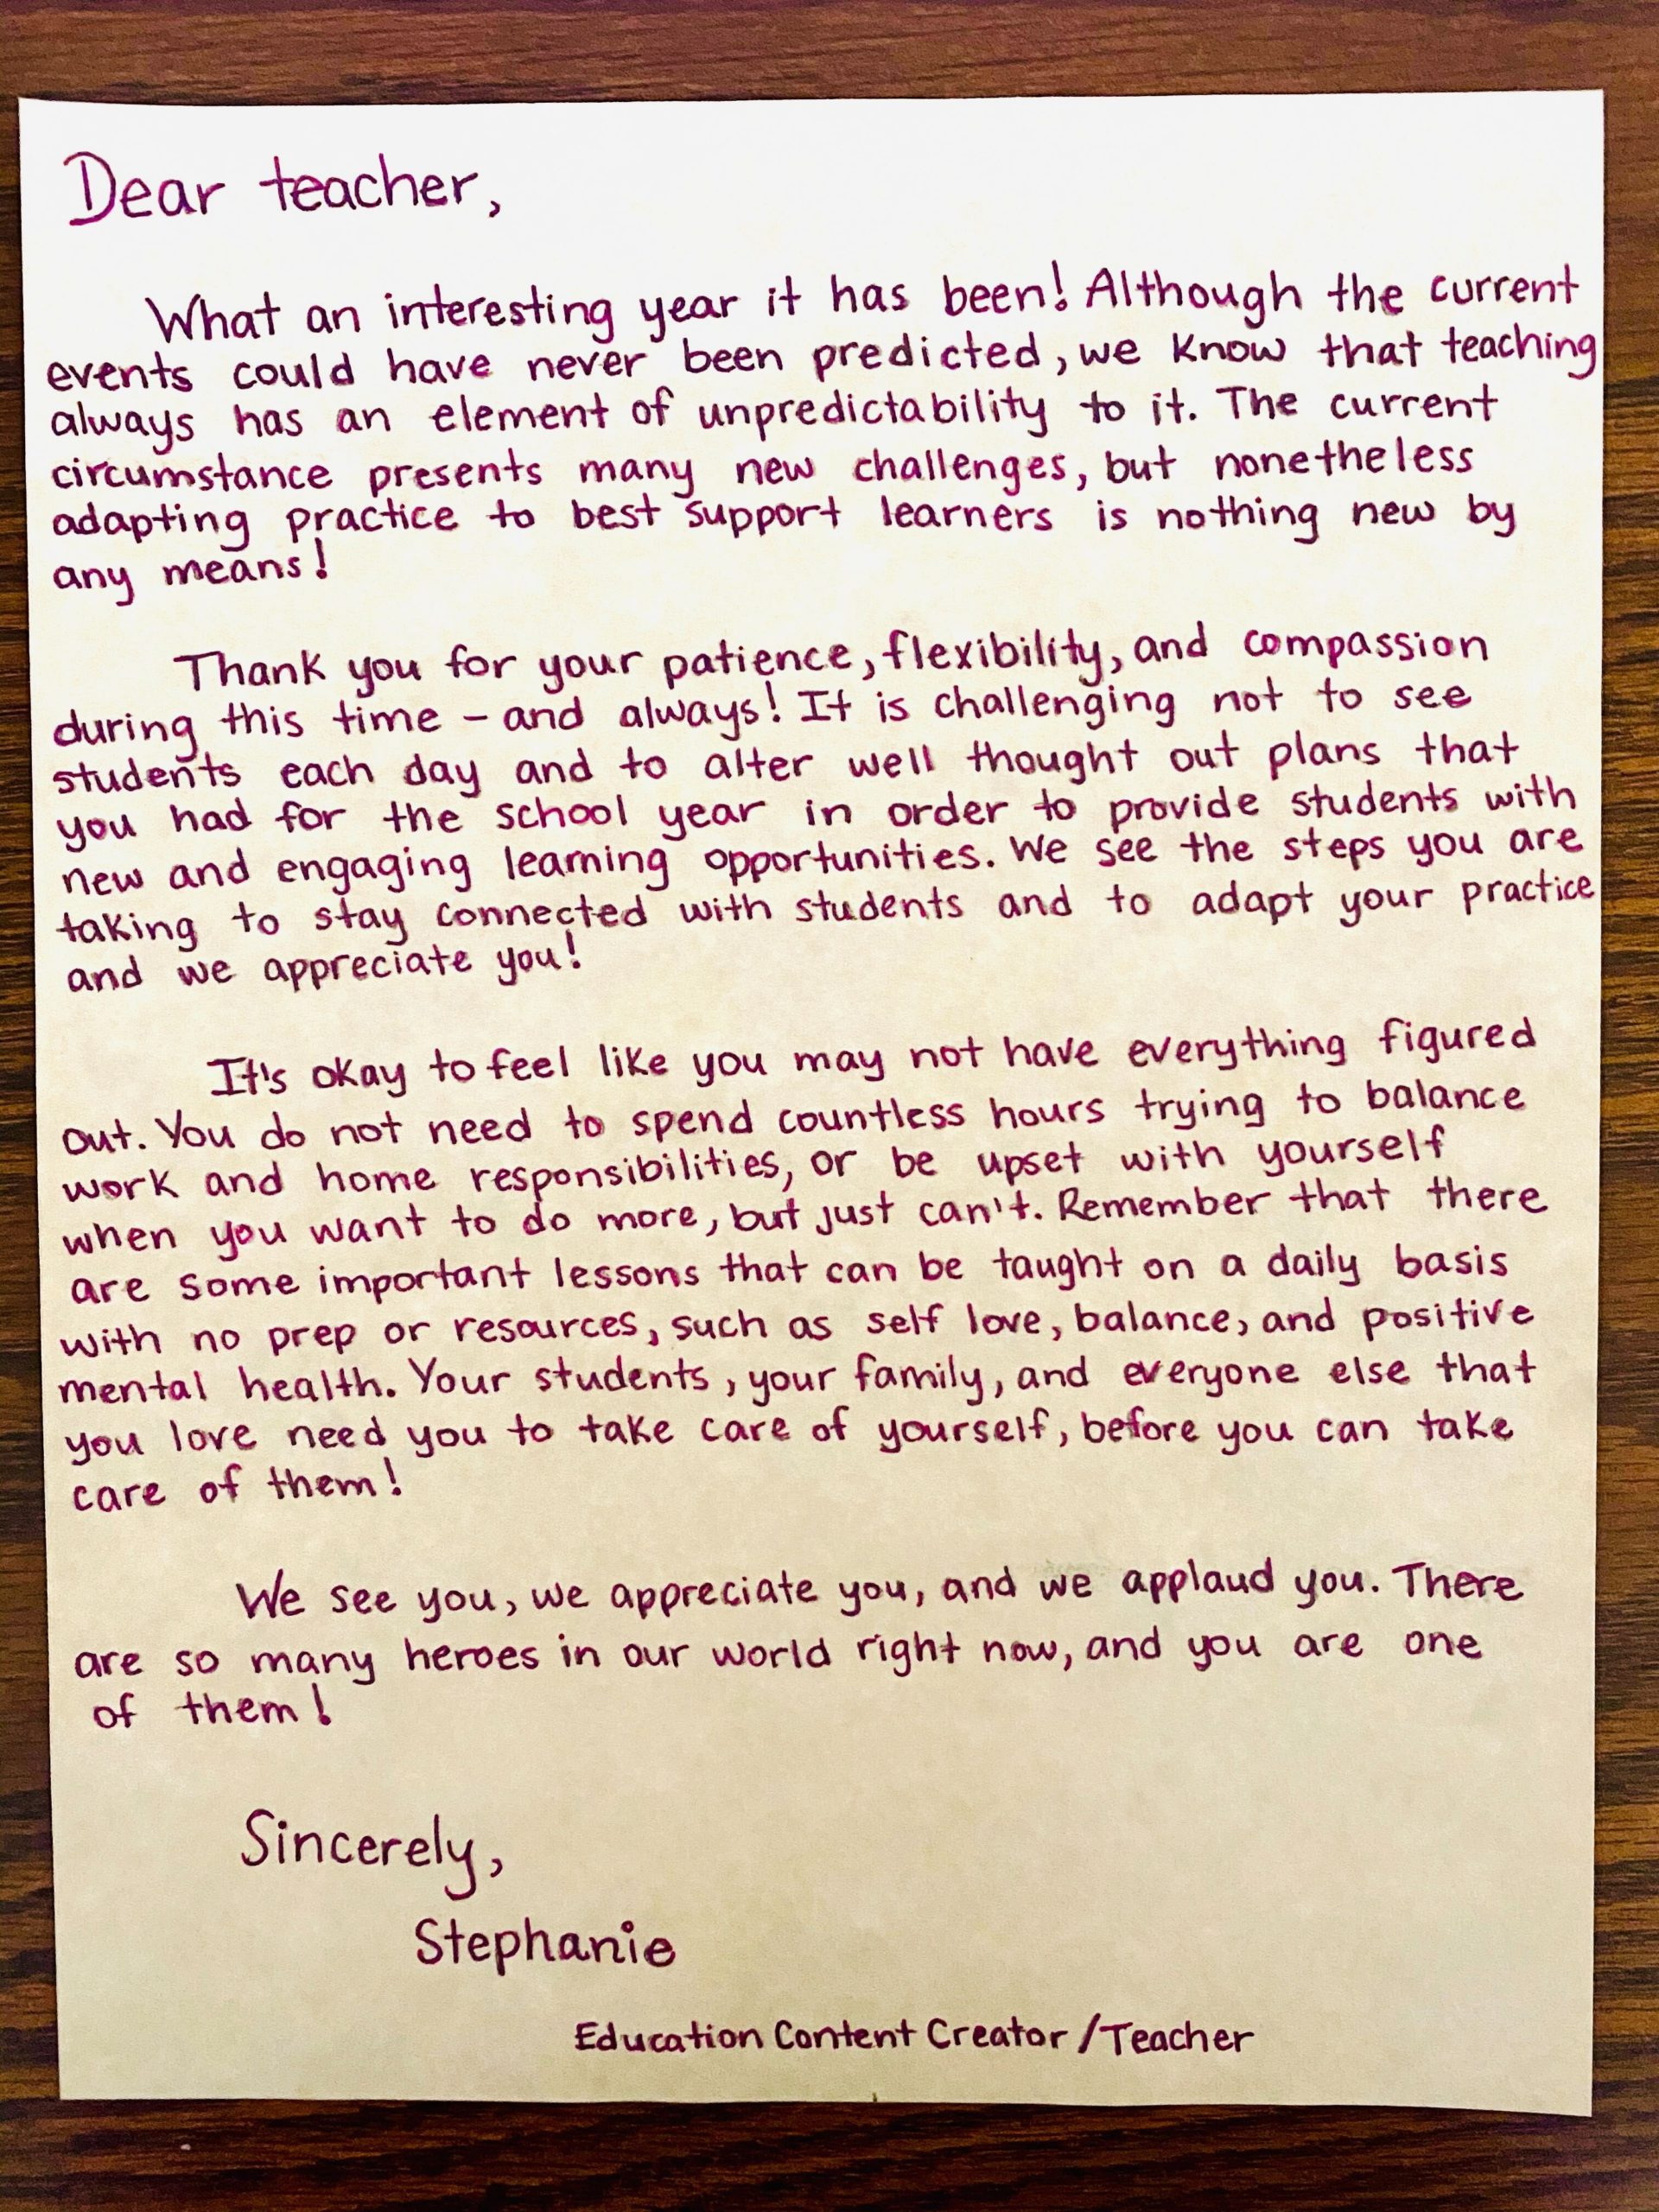 Letter For Teachers From Students from prodigy-legacy-images.s3.us-east-2.amazonaws.com